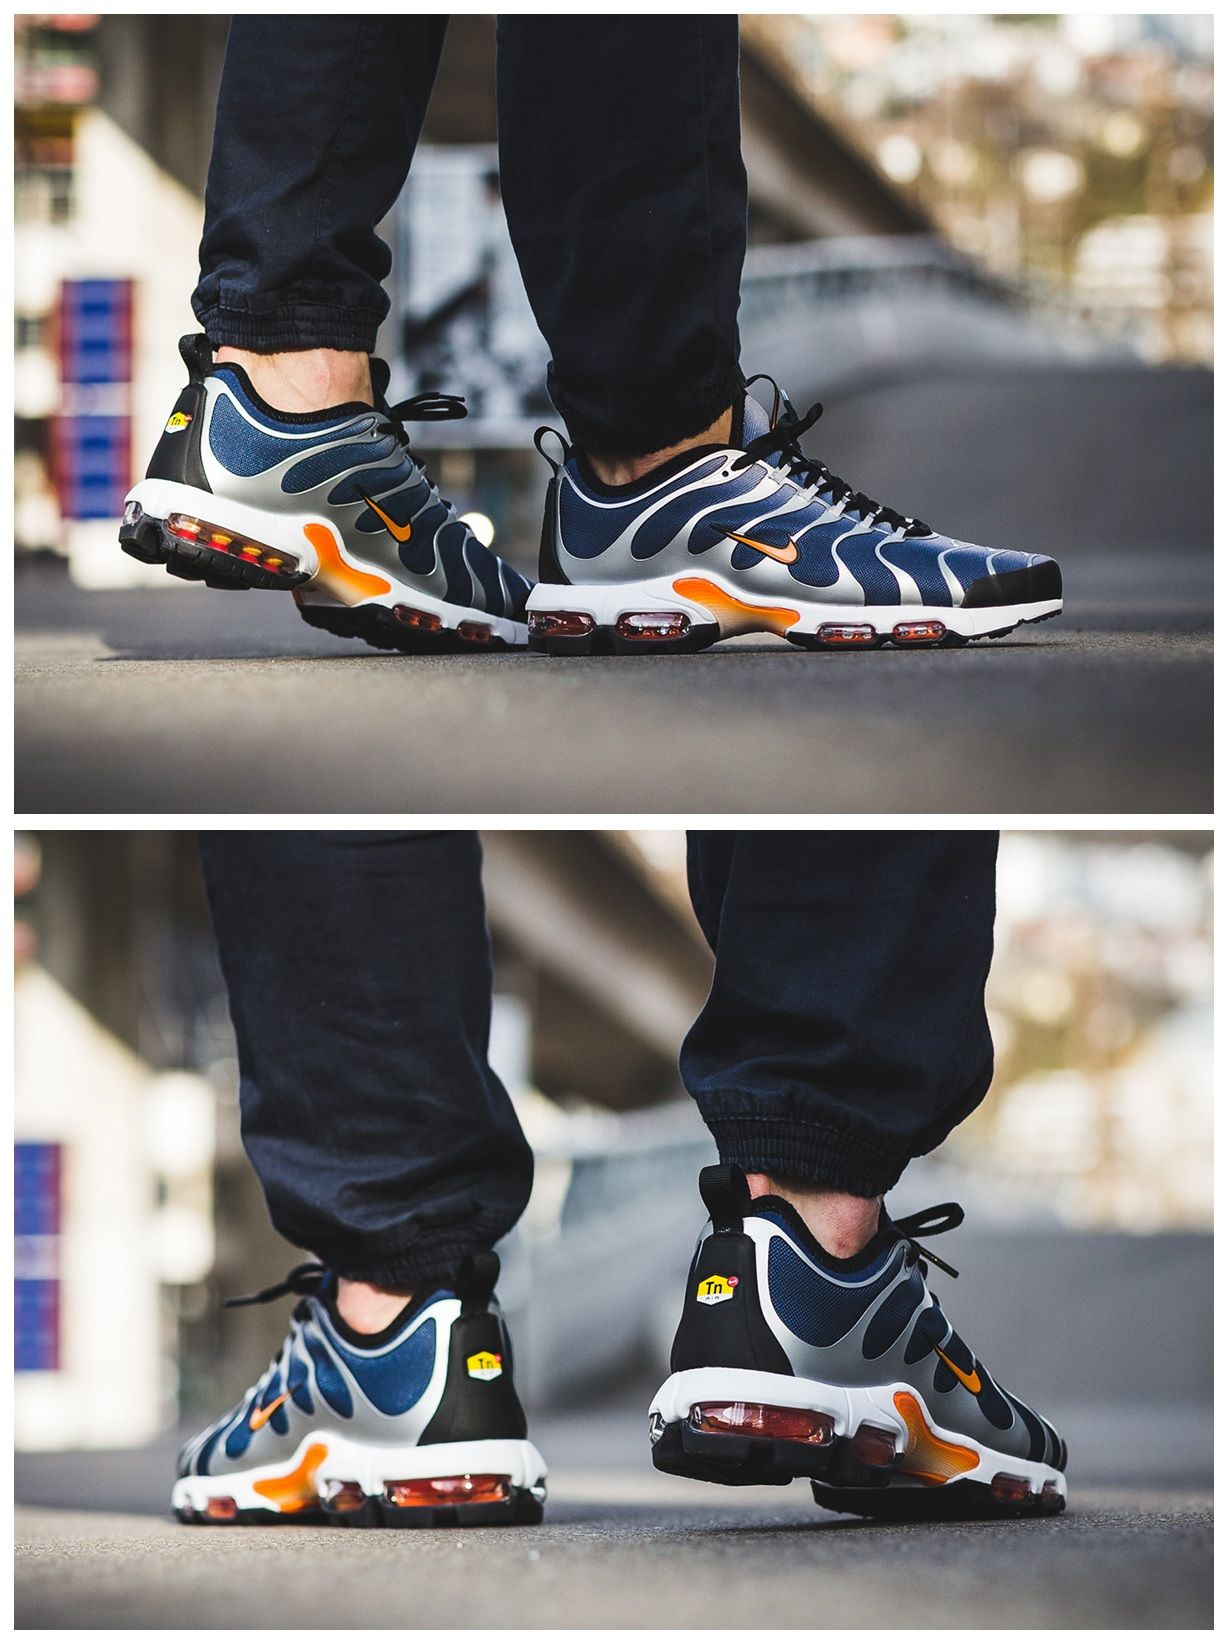 Roller skating shoes in chennai - Nike Air Max Plus Tn Ultra Armory Navy